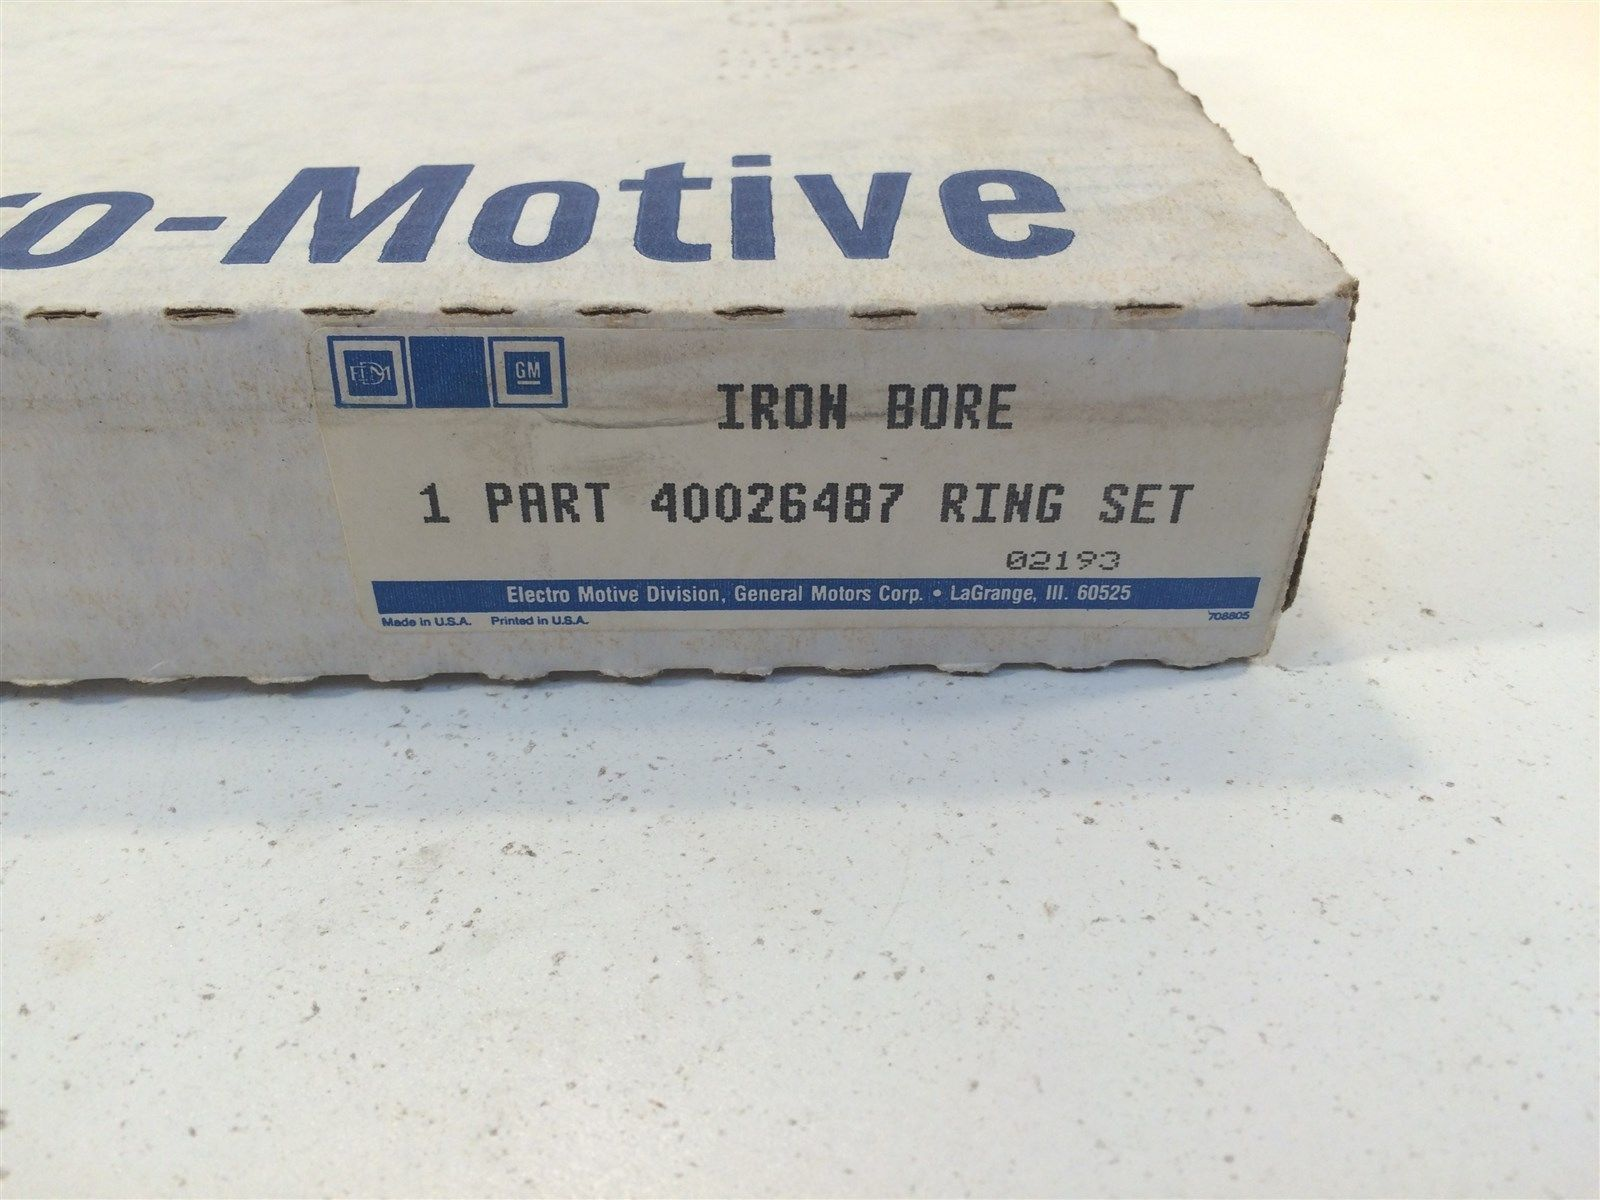 GM General Motors Electro Motive OEM Iron Bore Ring Set 40026487 Made in USA image 11